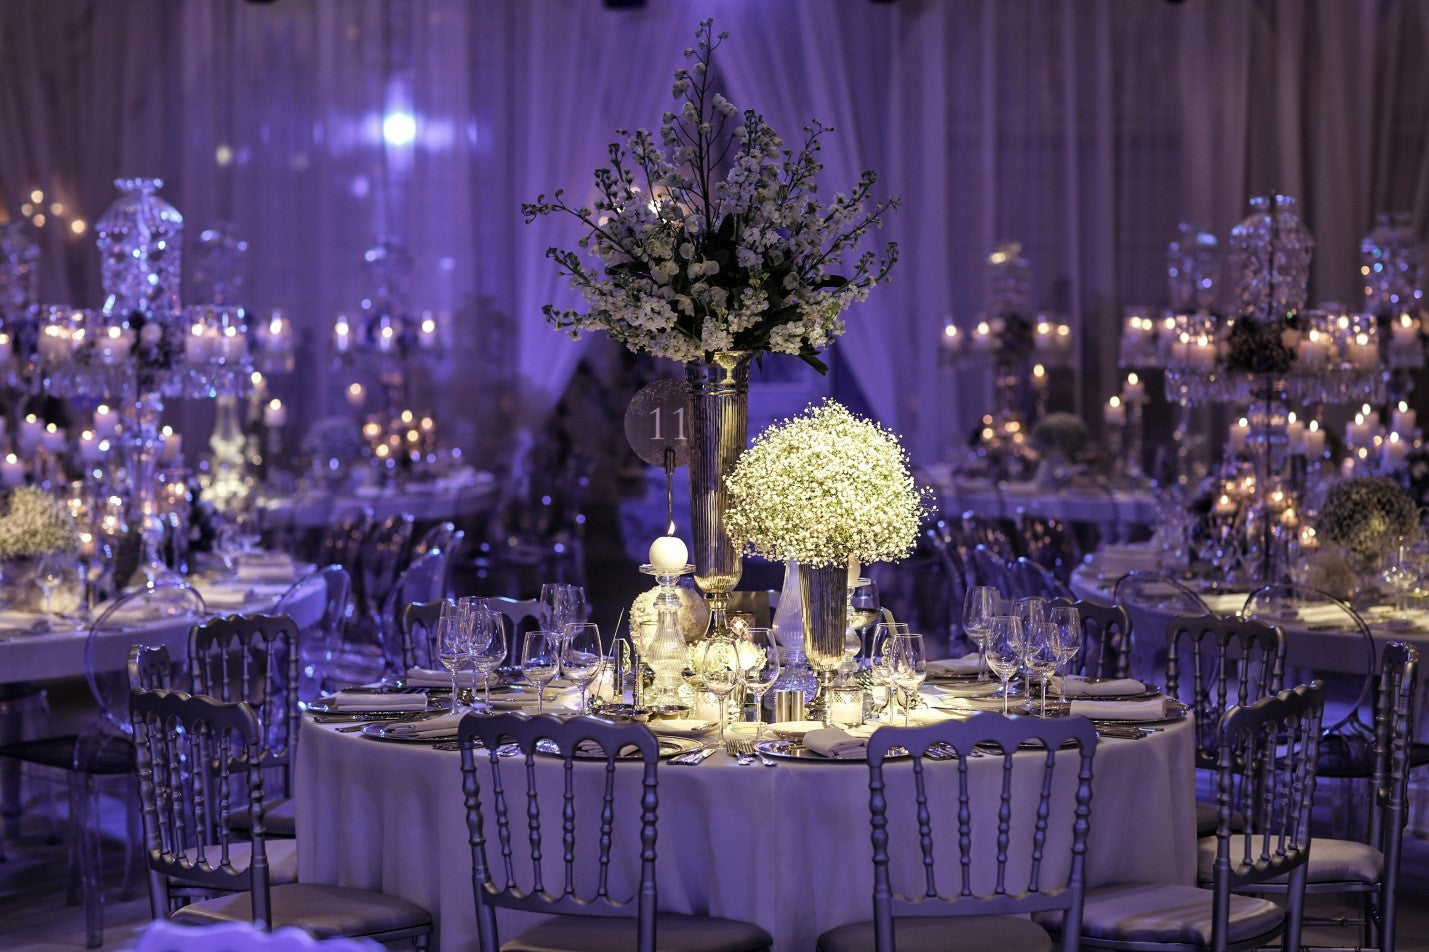 purple themed event with candle centerpieces